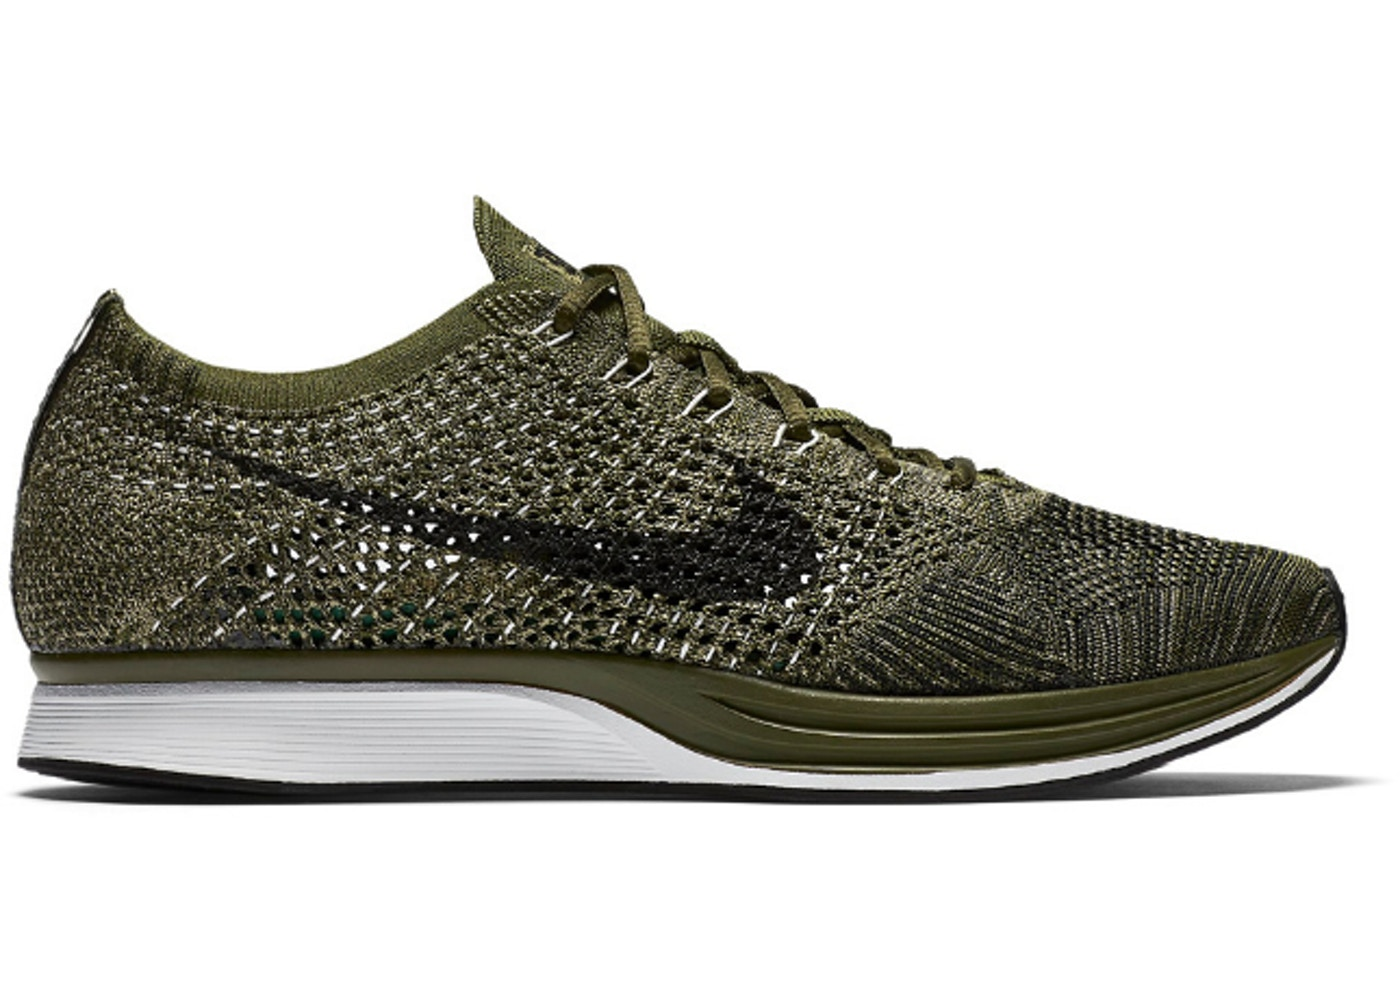 91a455137eb3c Nike Flyknit Racer Rough Green - 862713-300